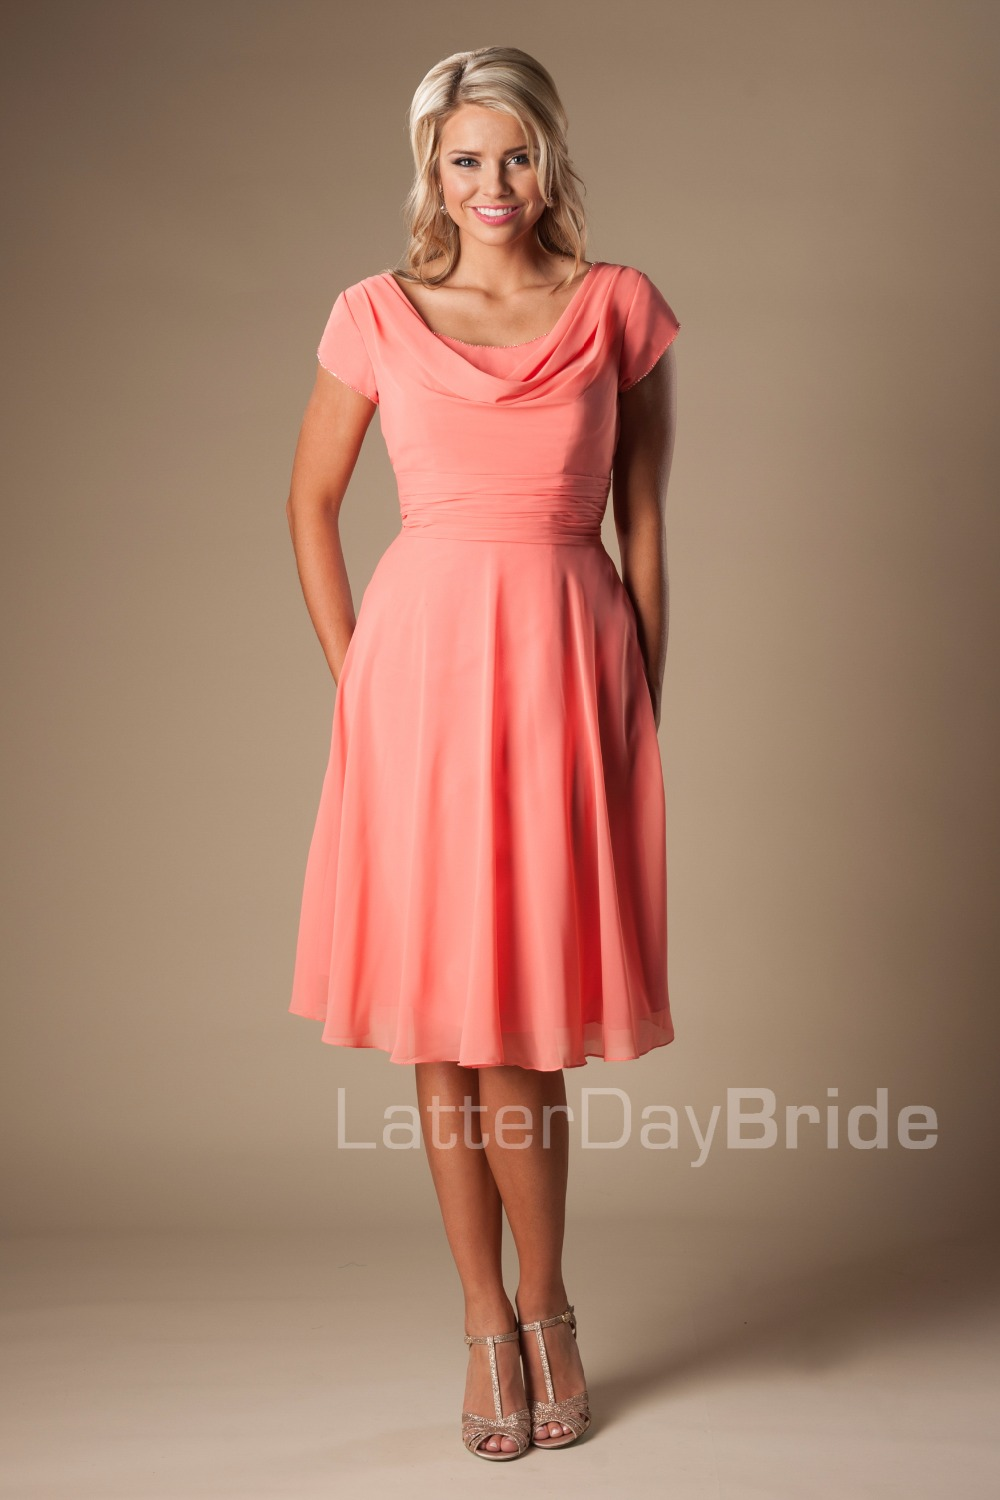 Casual Coral Chiffon Short Modest   Bridesmaid     Dresses   With Cap Sleeves A-line Informal Beach Maids of Honor   Dresses   Custom Made